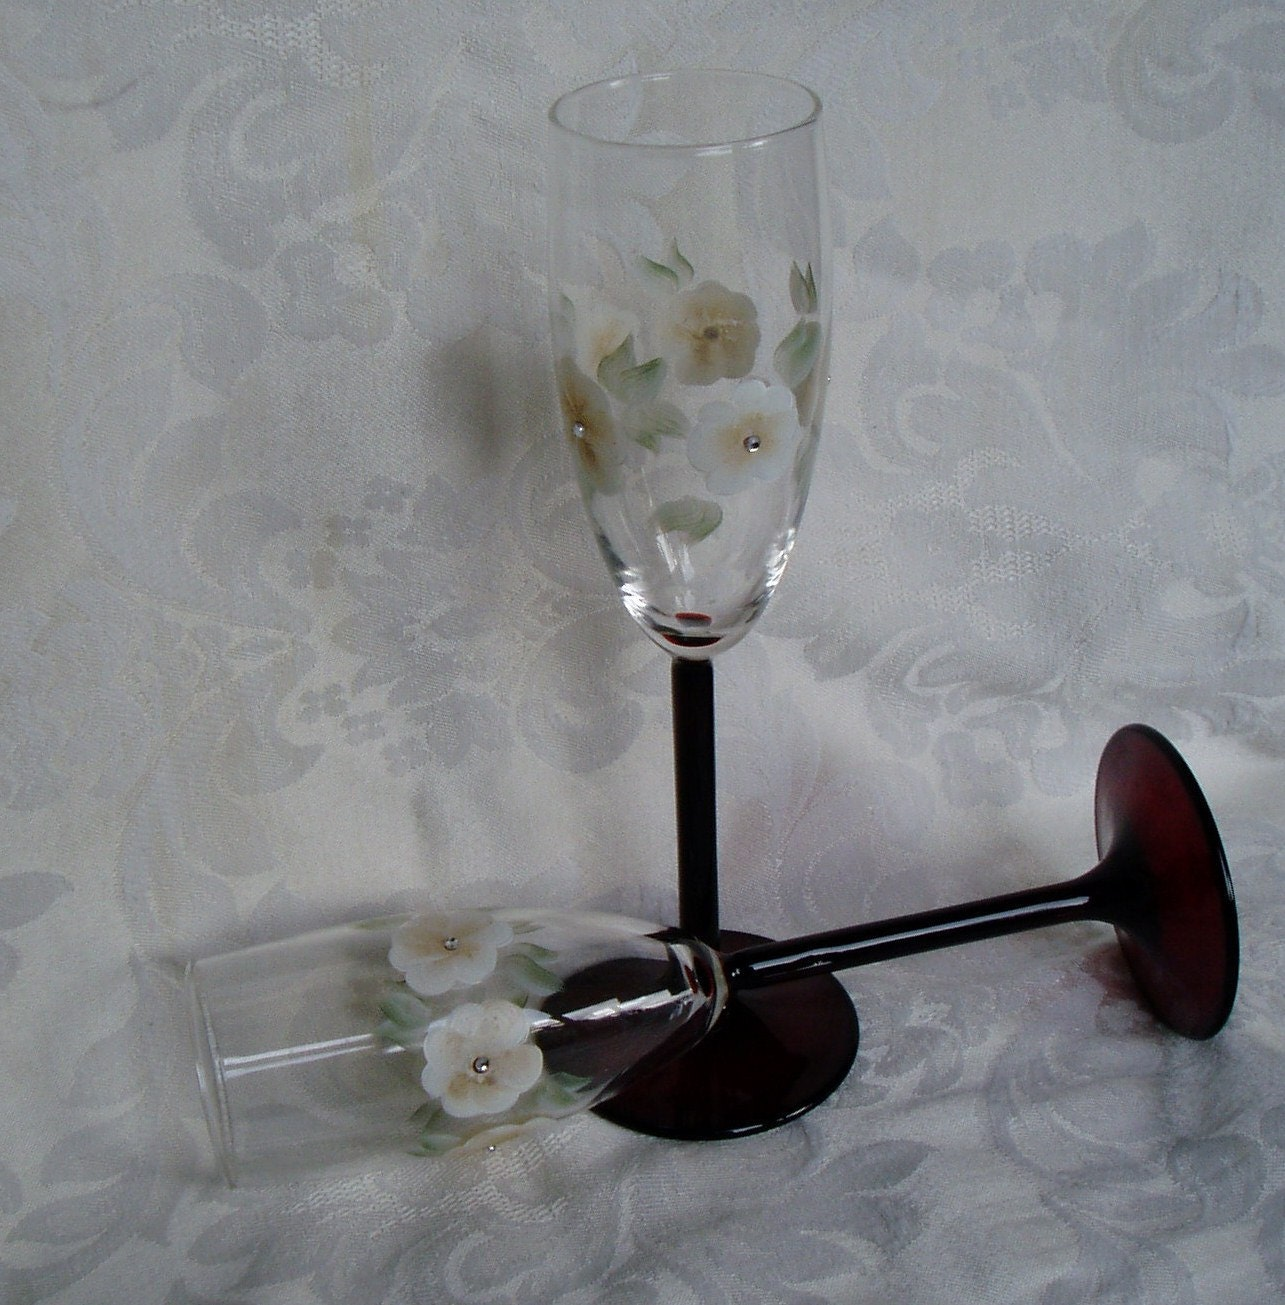 Champagne glasses - Chocolate Stems/Cream & Coffee flowers